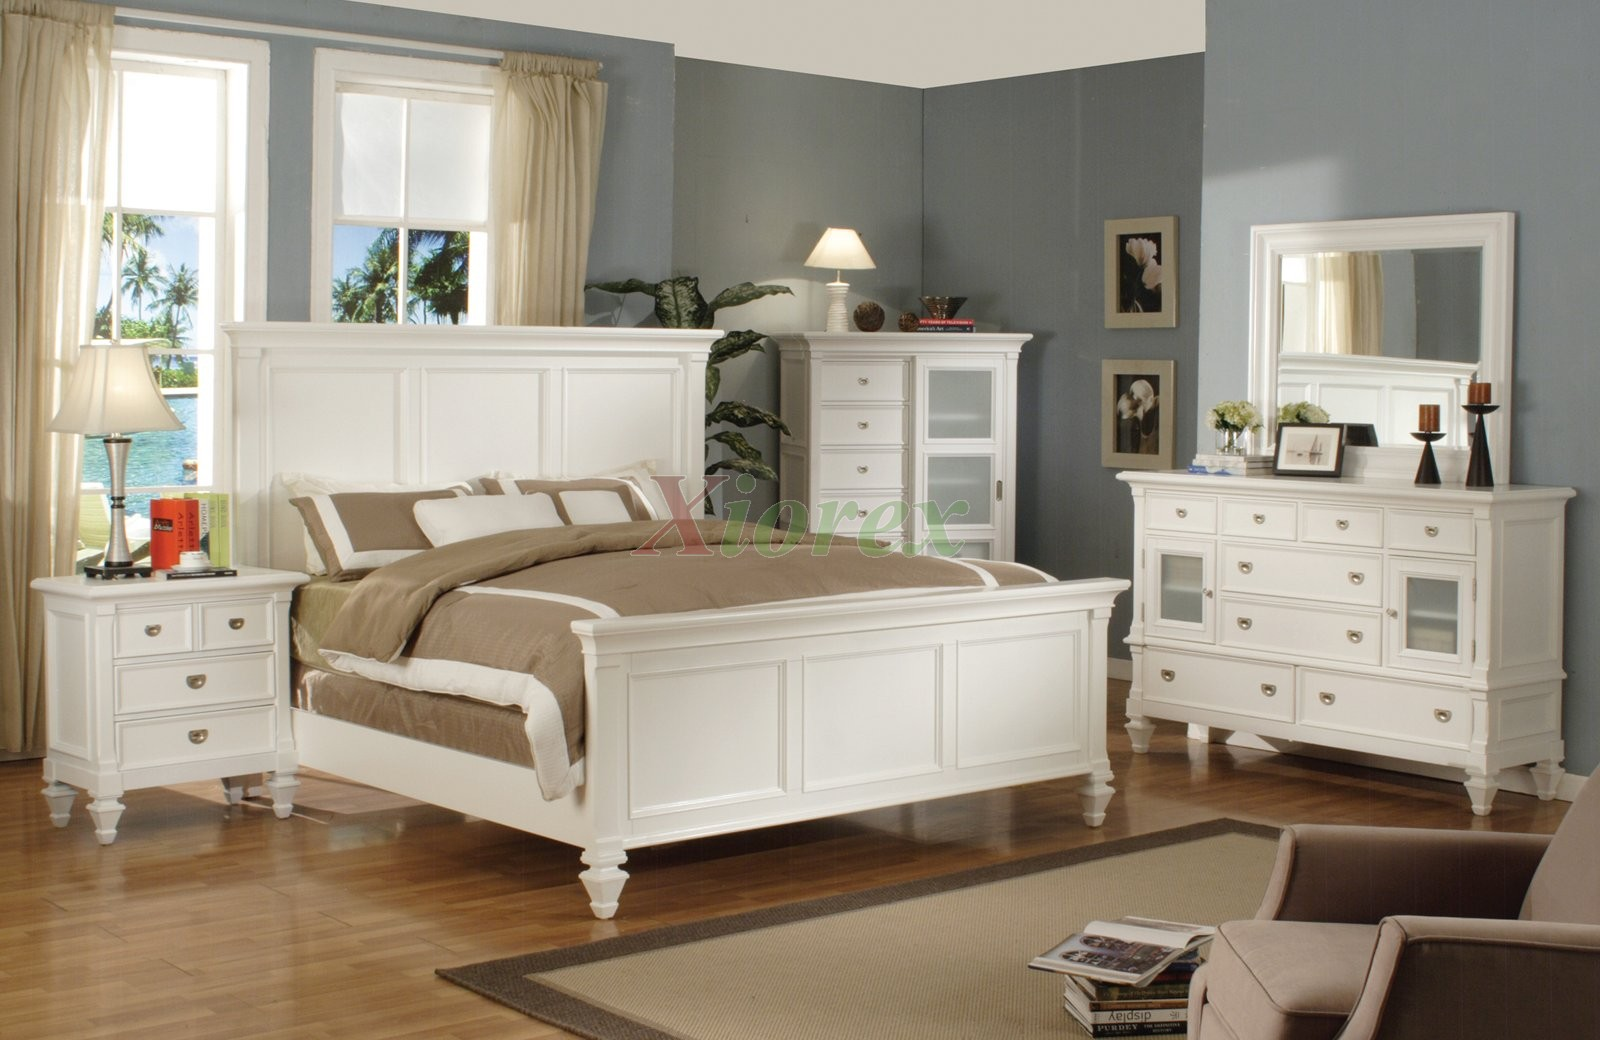 White Bedroom Set with Tall Headboard King and Queen Beds 126 | Xiorex;  Black Bedroom Furniture